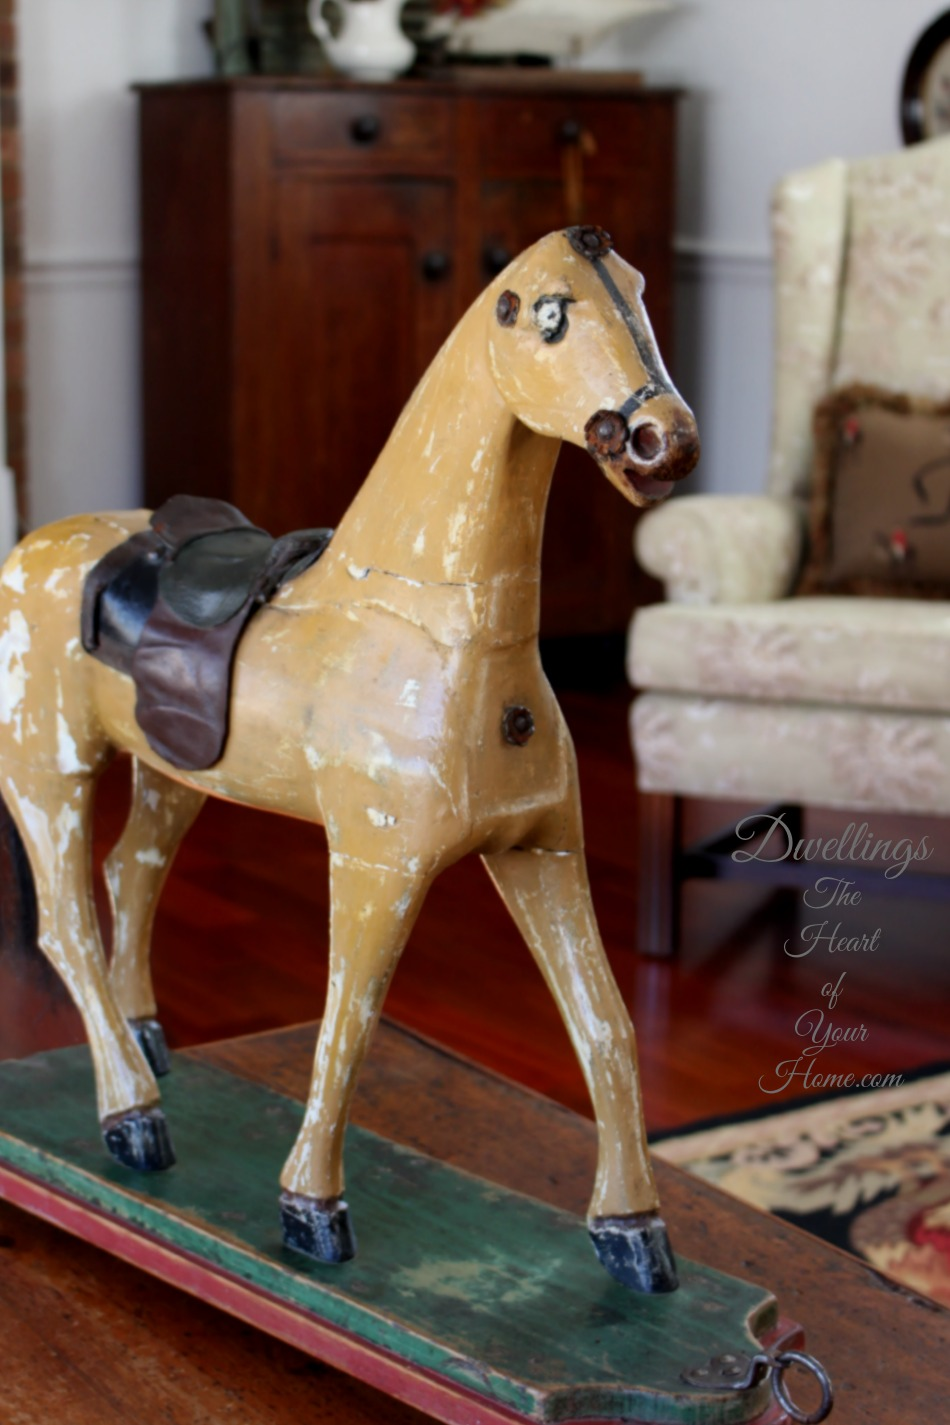 Primitive Equestrian Dwellings The Heart Of Your Home